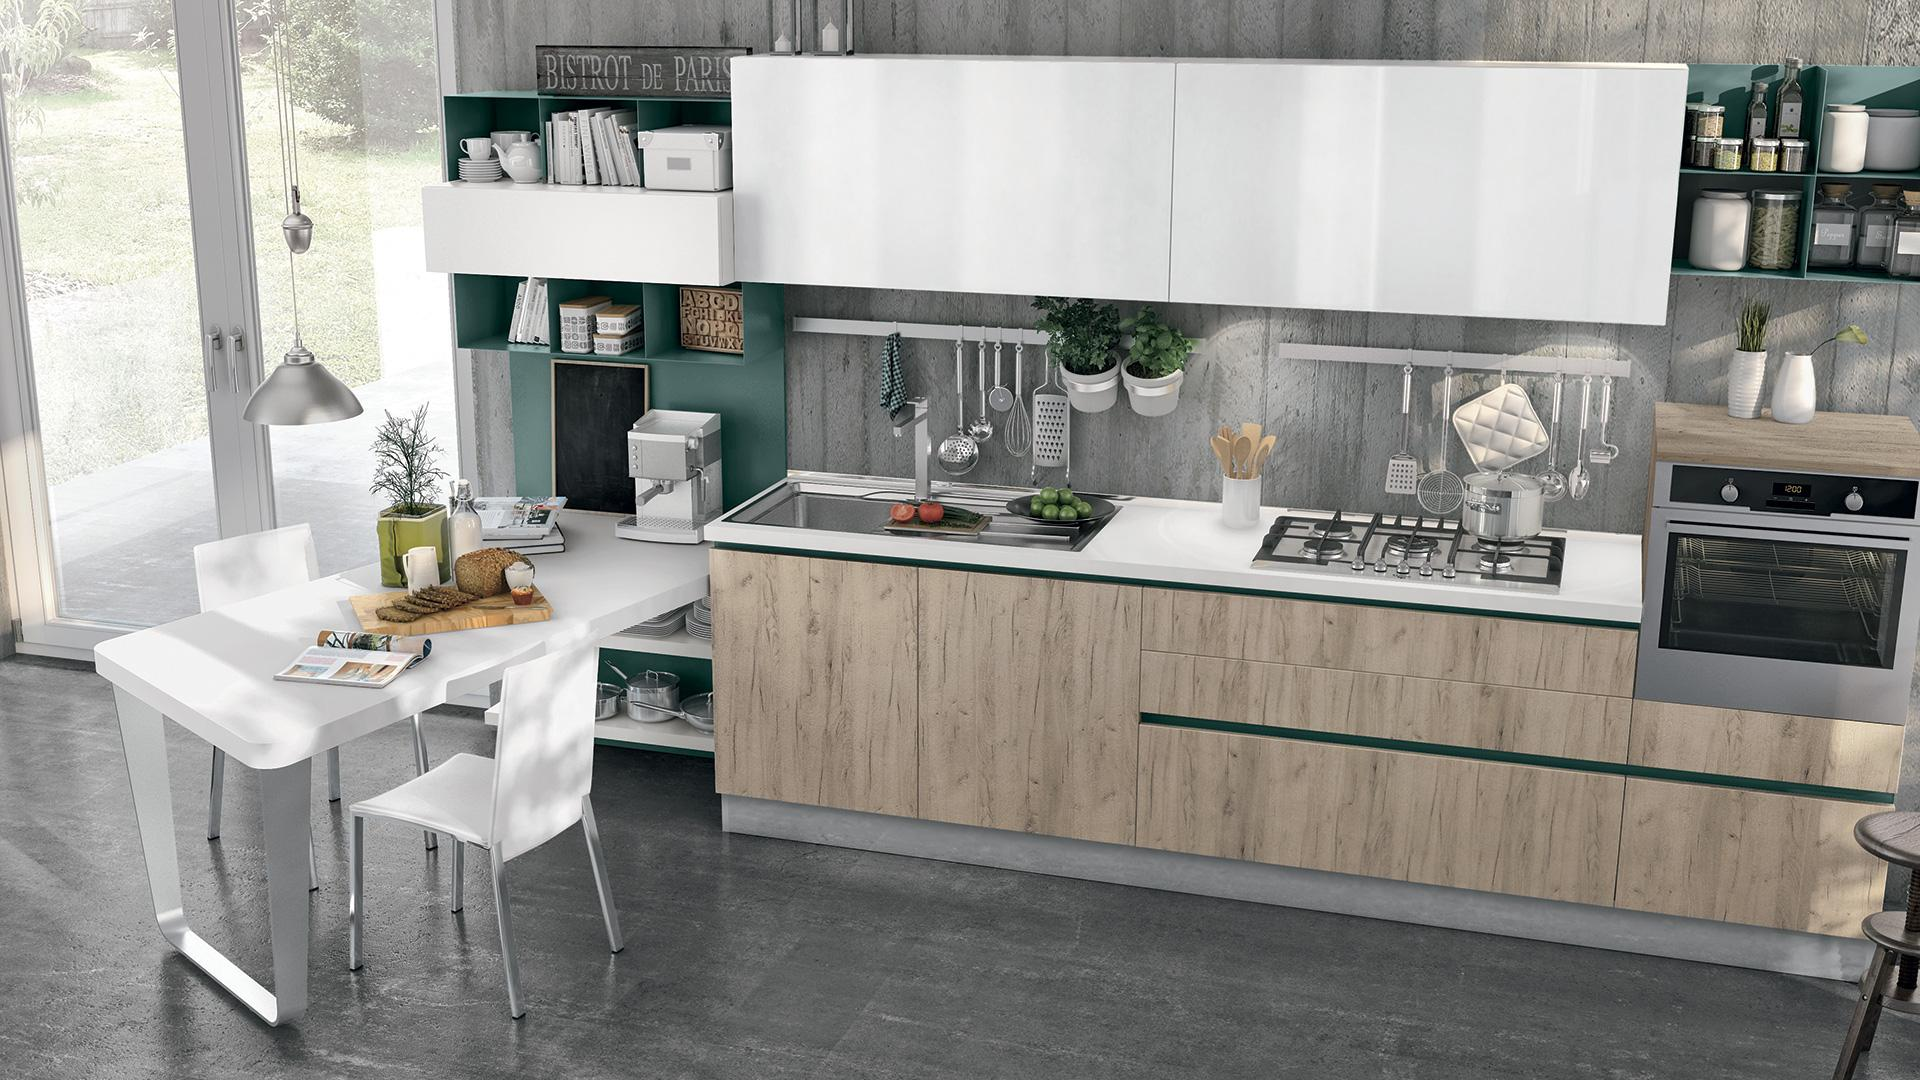 Awesome Top Cucine Lube Images - Skilifts.us - skilifts.us